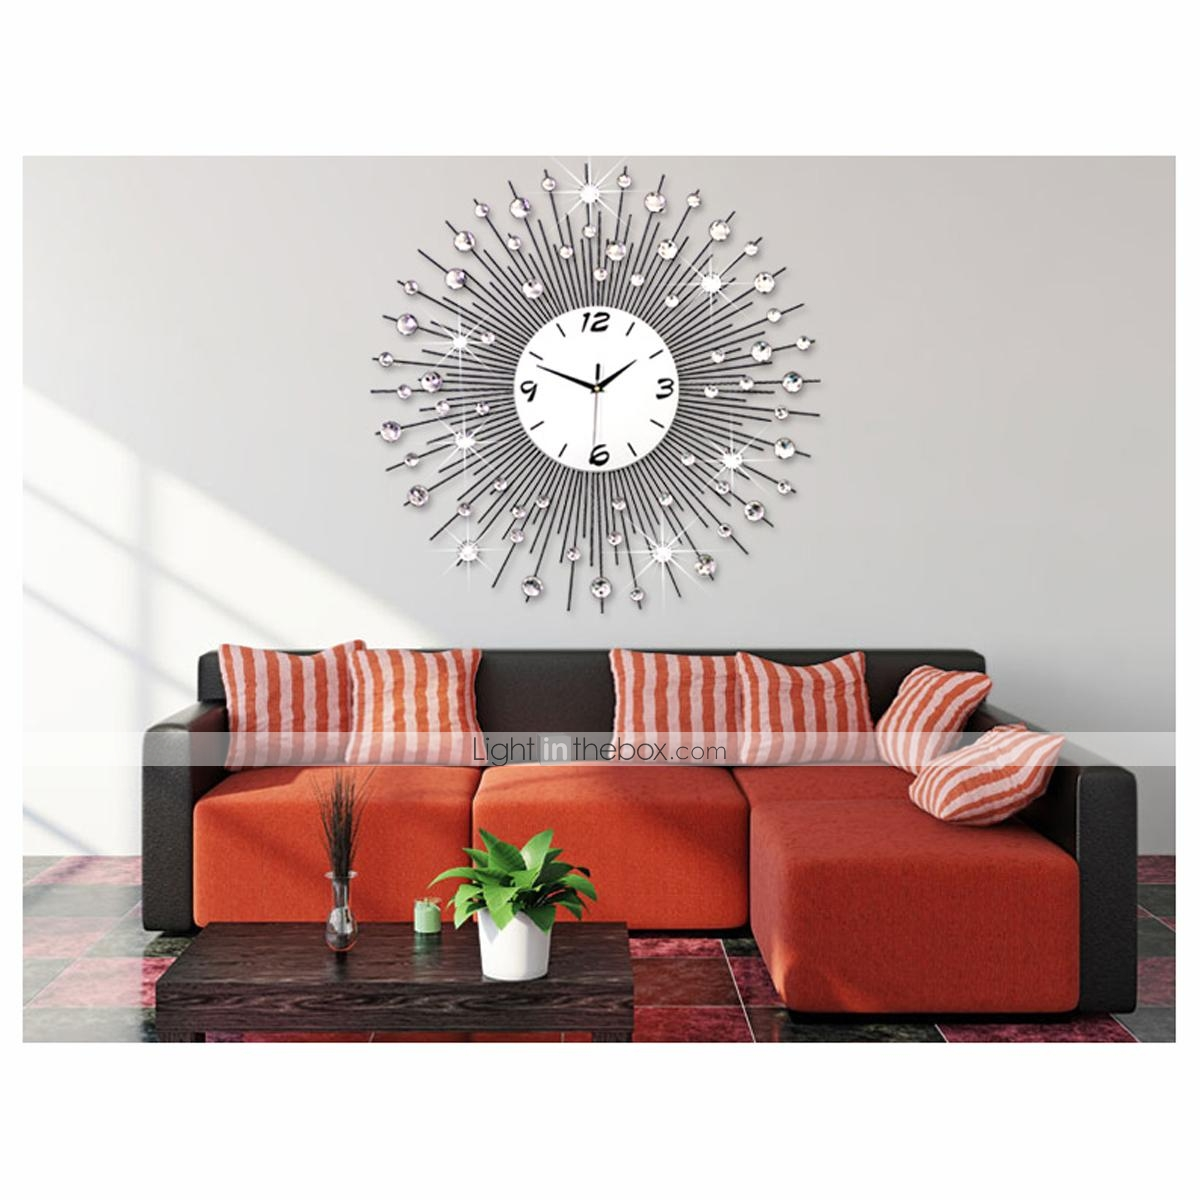 Extra Large Modern Luxury Scenic Iron Metal Living Room Wall Clock Living Room